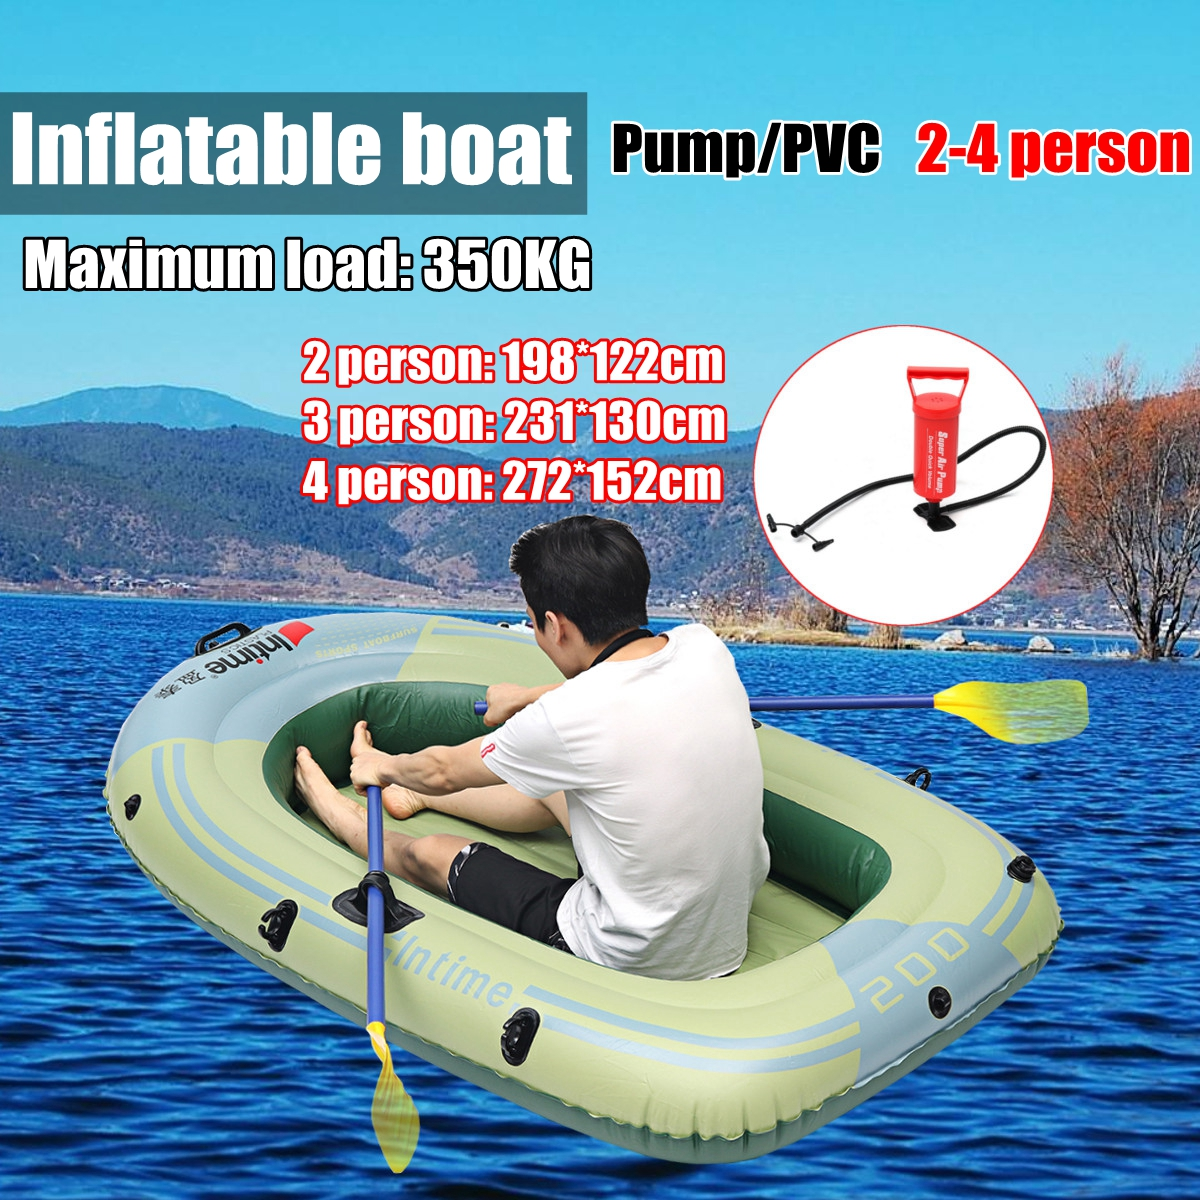 Sports Inflatable Fishing Boat Raft PVC Canoe Dinghy Tender 2/3/4 Person Kayak Fishing Boats Cushion Rowing Boats фигура садовая троица грибов на пне 22 х 25 х 20 см